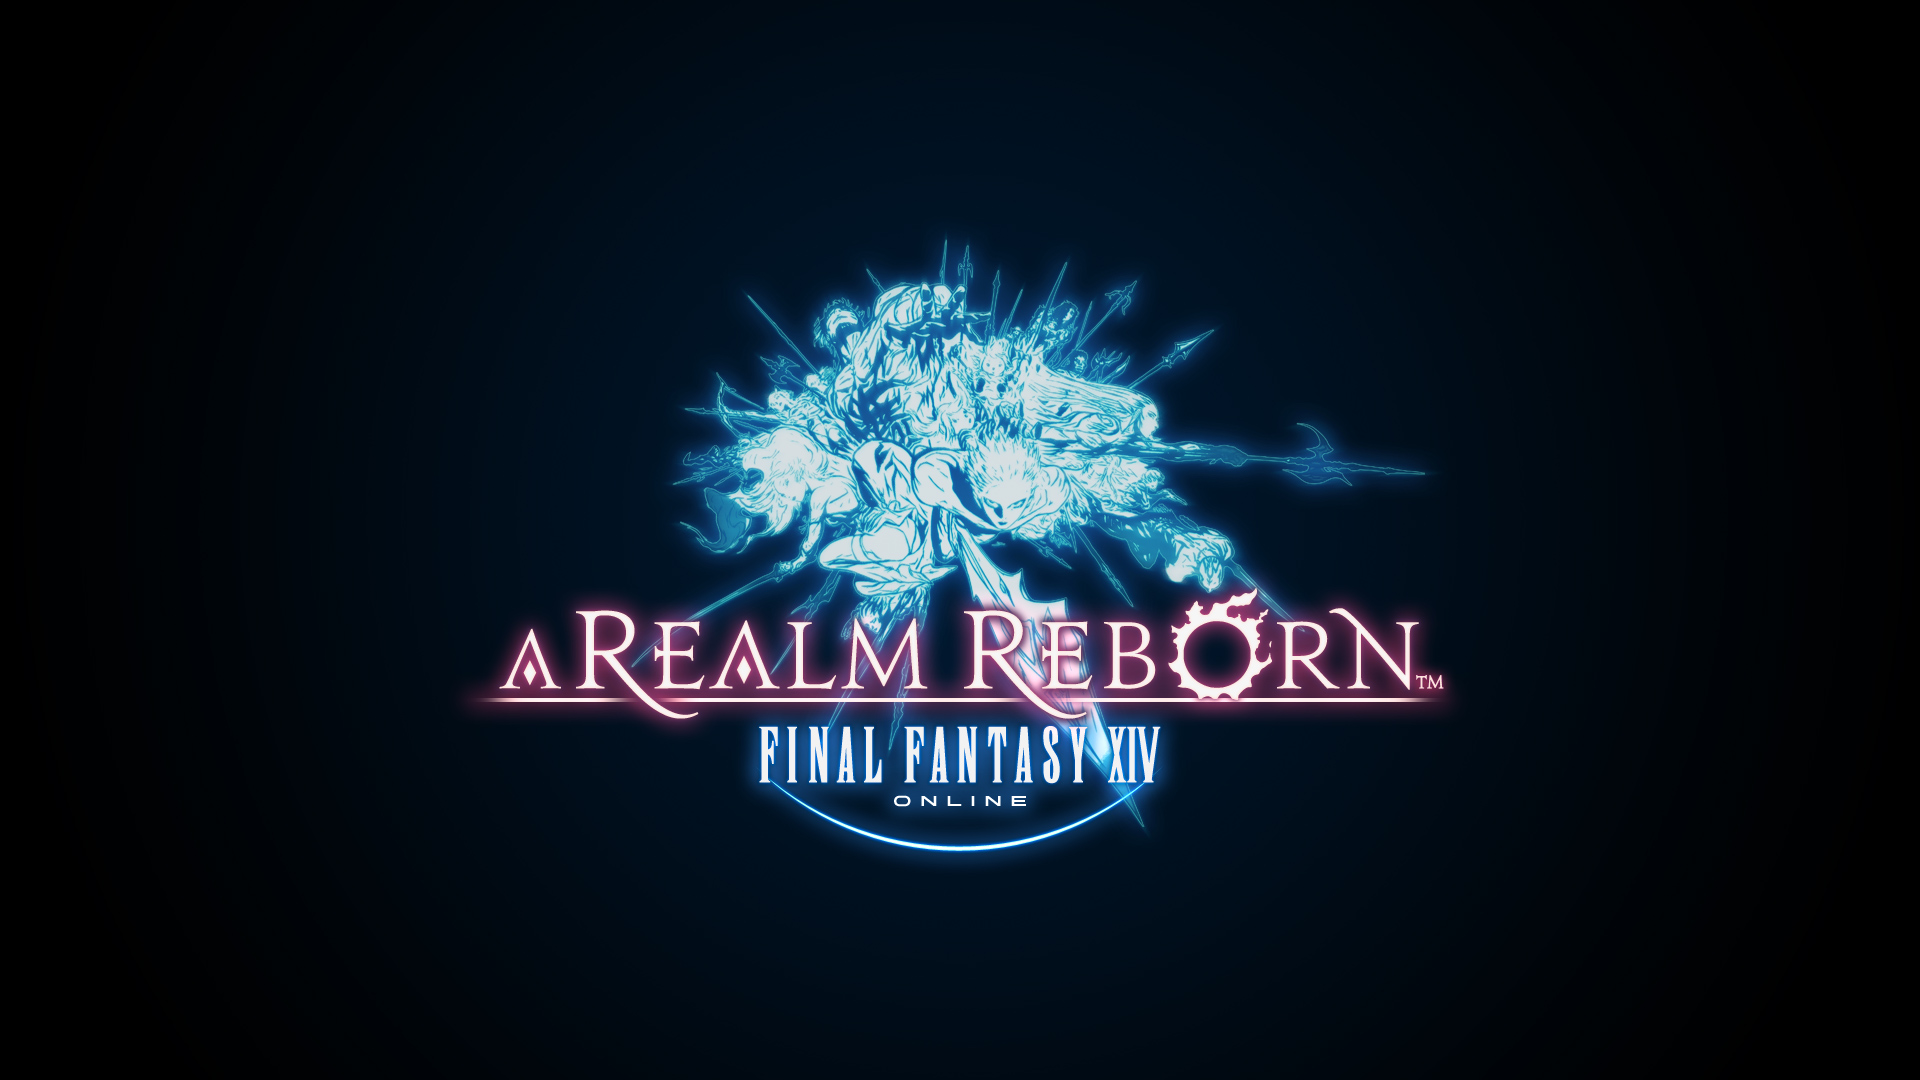 Final Fantasy Xiv Had Over 18 Million Players So Far Patch 5 2